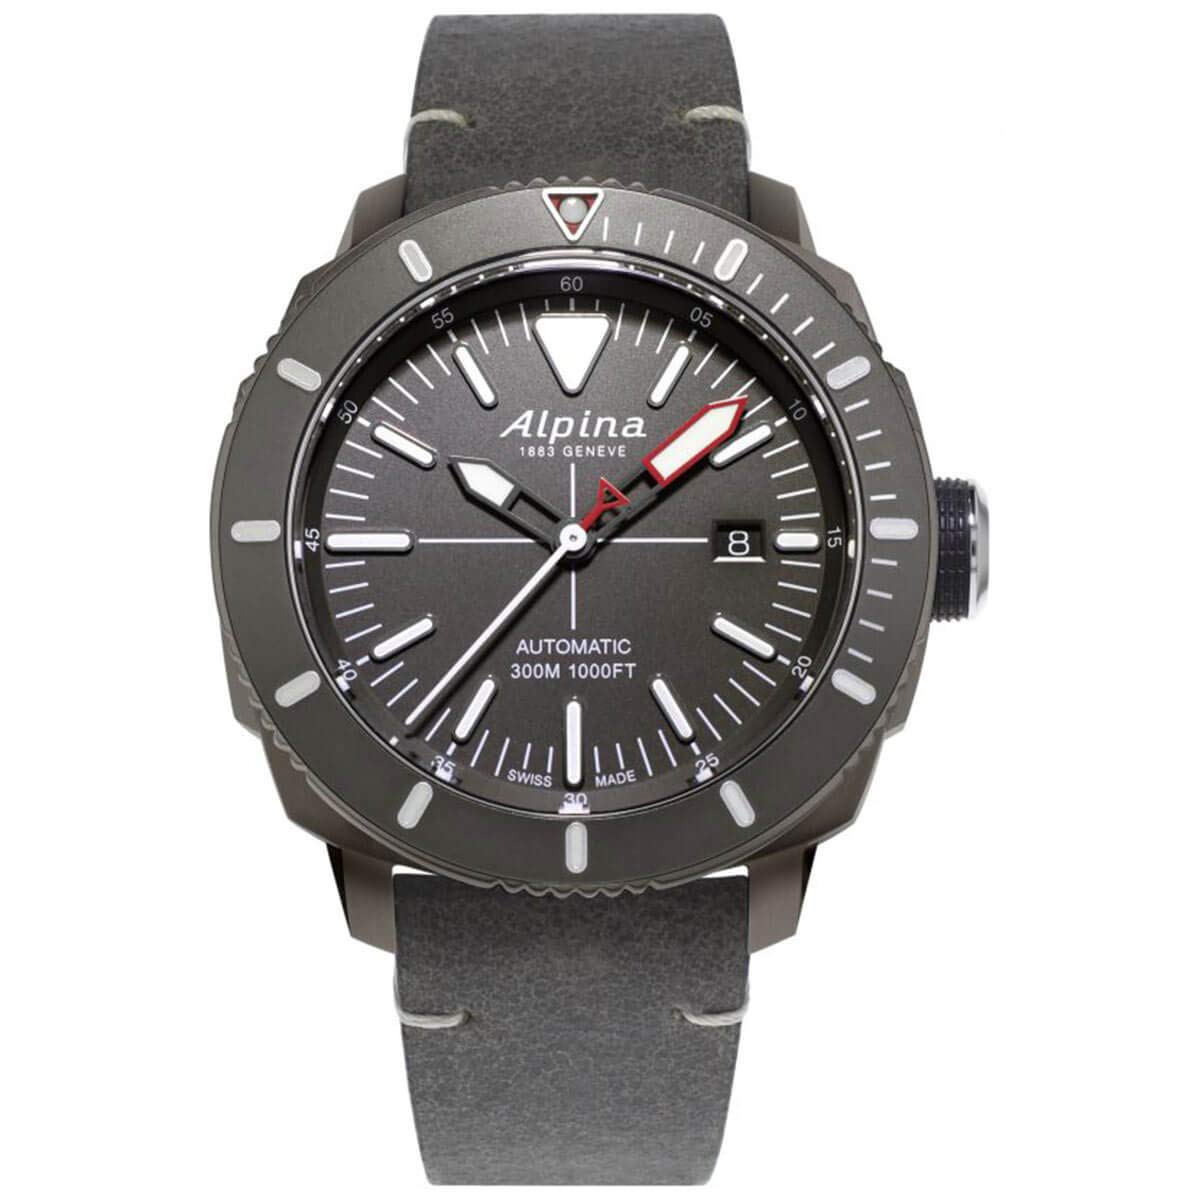 Image of Alpina Men's Seastrong Diver Titanium/Stainless Steel Swiss Automatic Sport Watch with Leather Calfskin Strap, Gray, 22 (Model: AL-525LGGW4TV6) Sport Watches